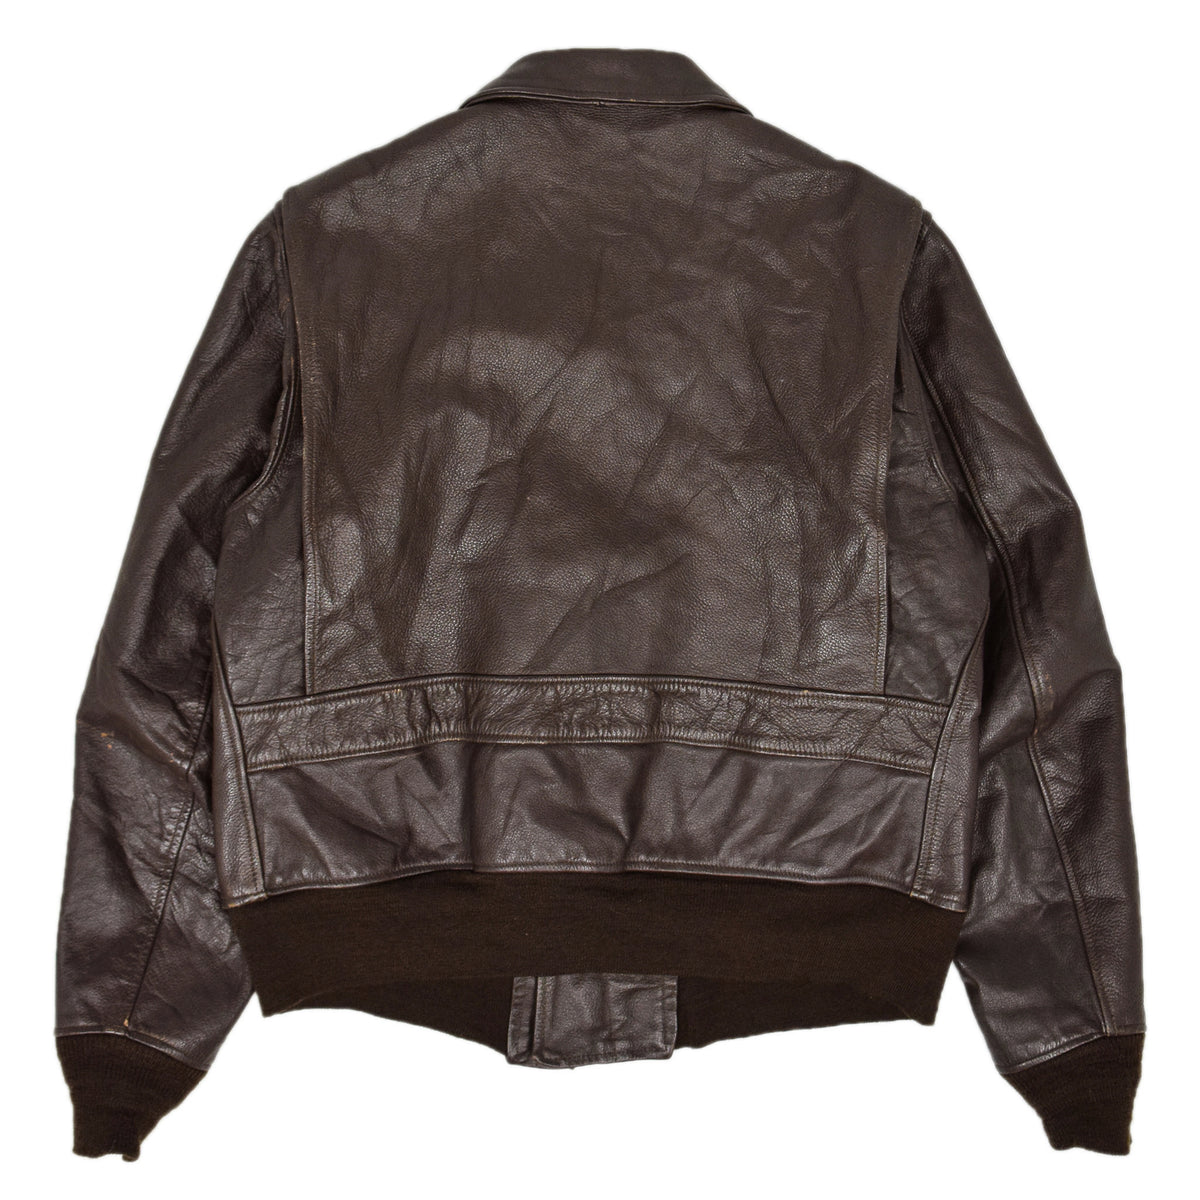 Vintage 1970 US Navy G-1 Brill Bros Vietnam Leather Flying Bomber Jacket L / XL back